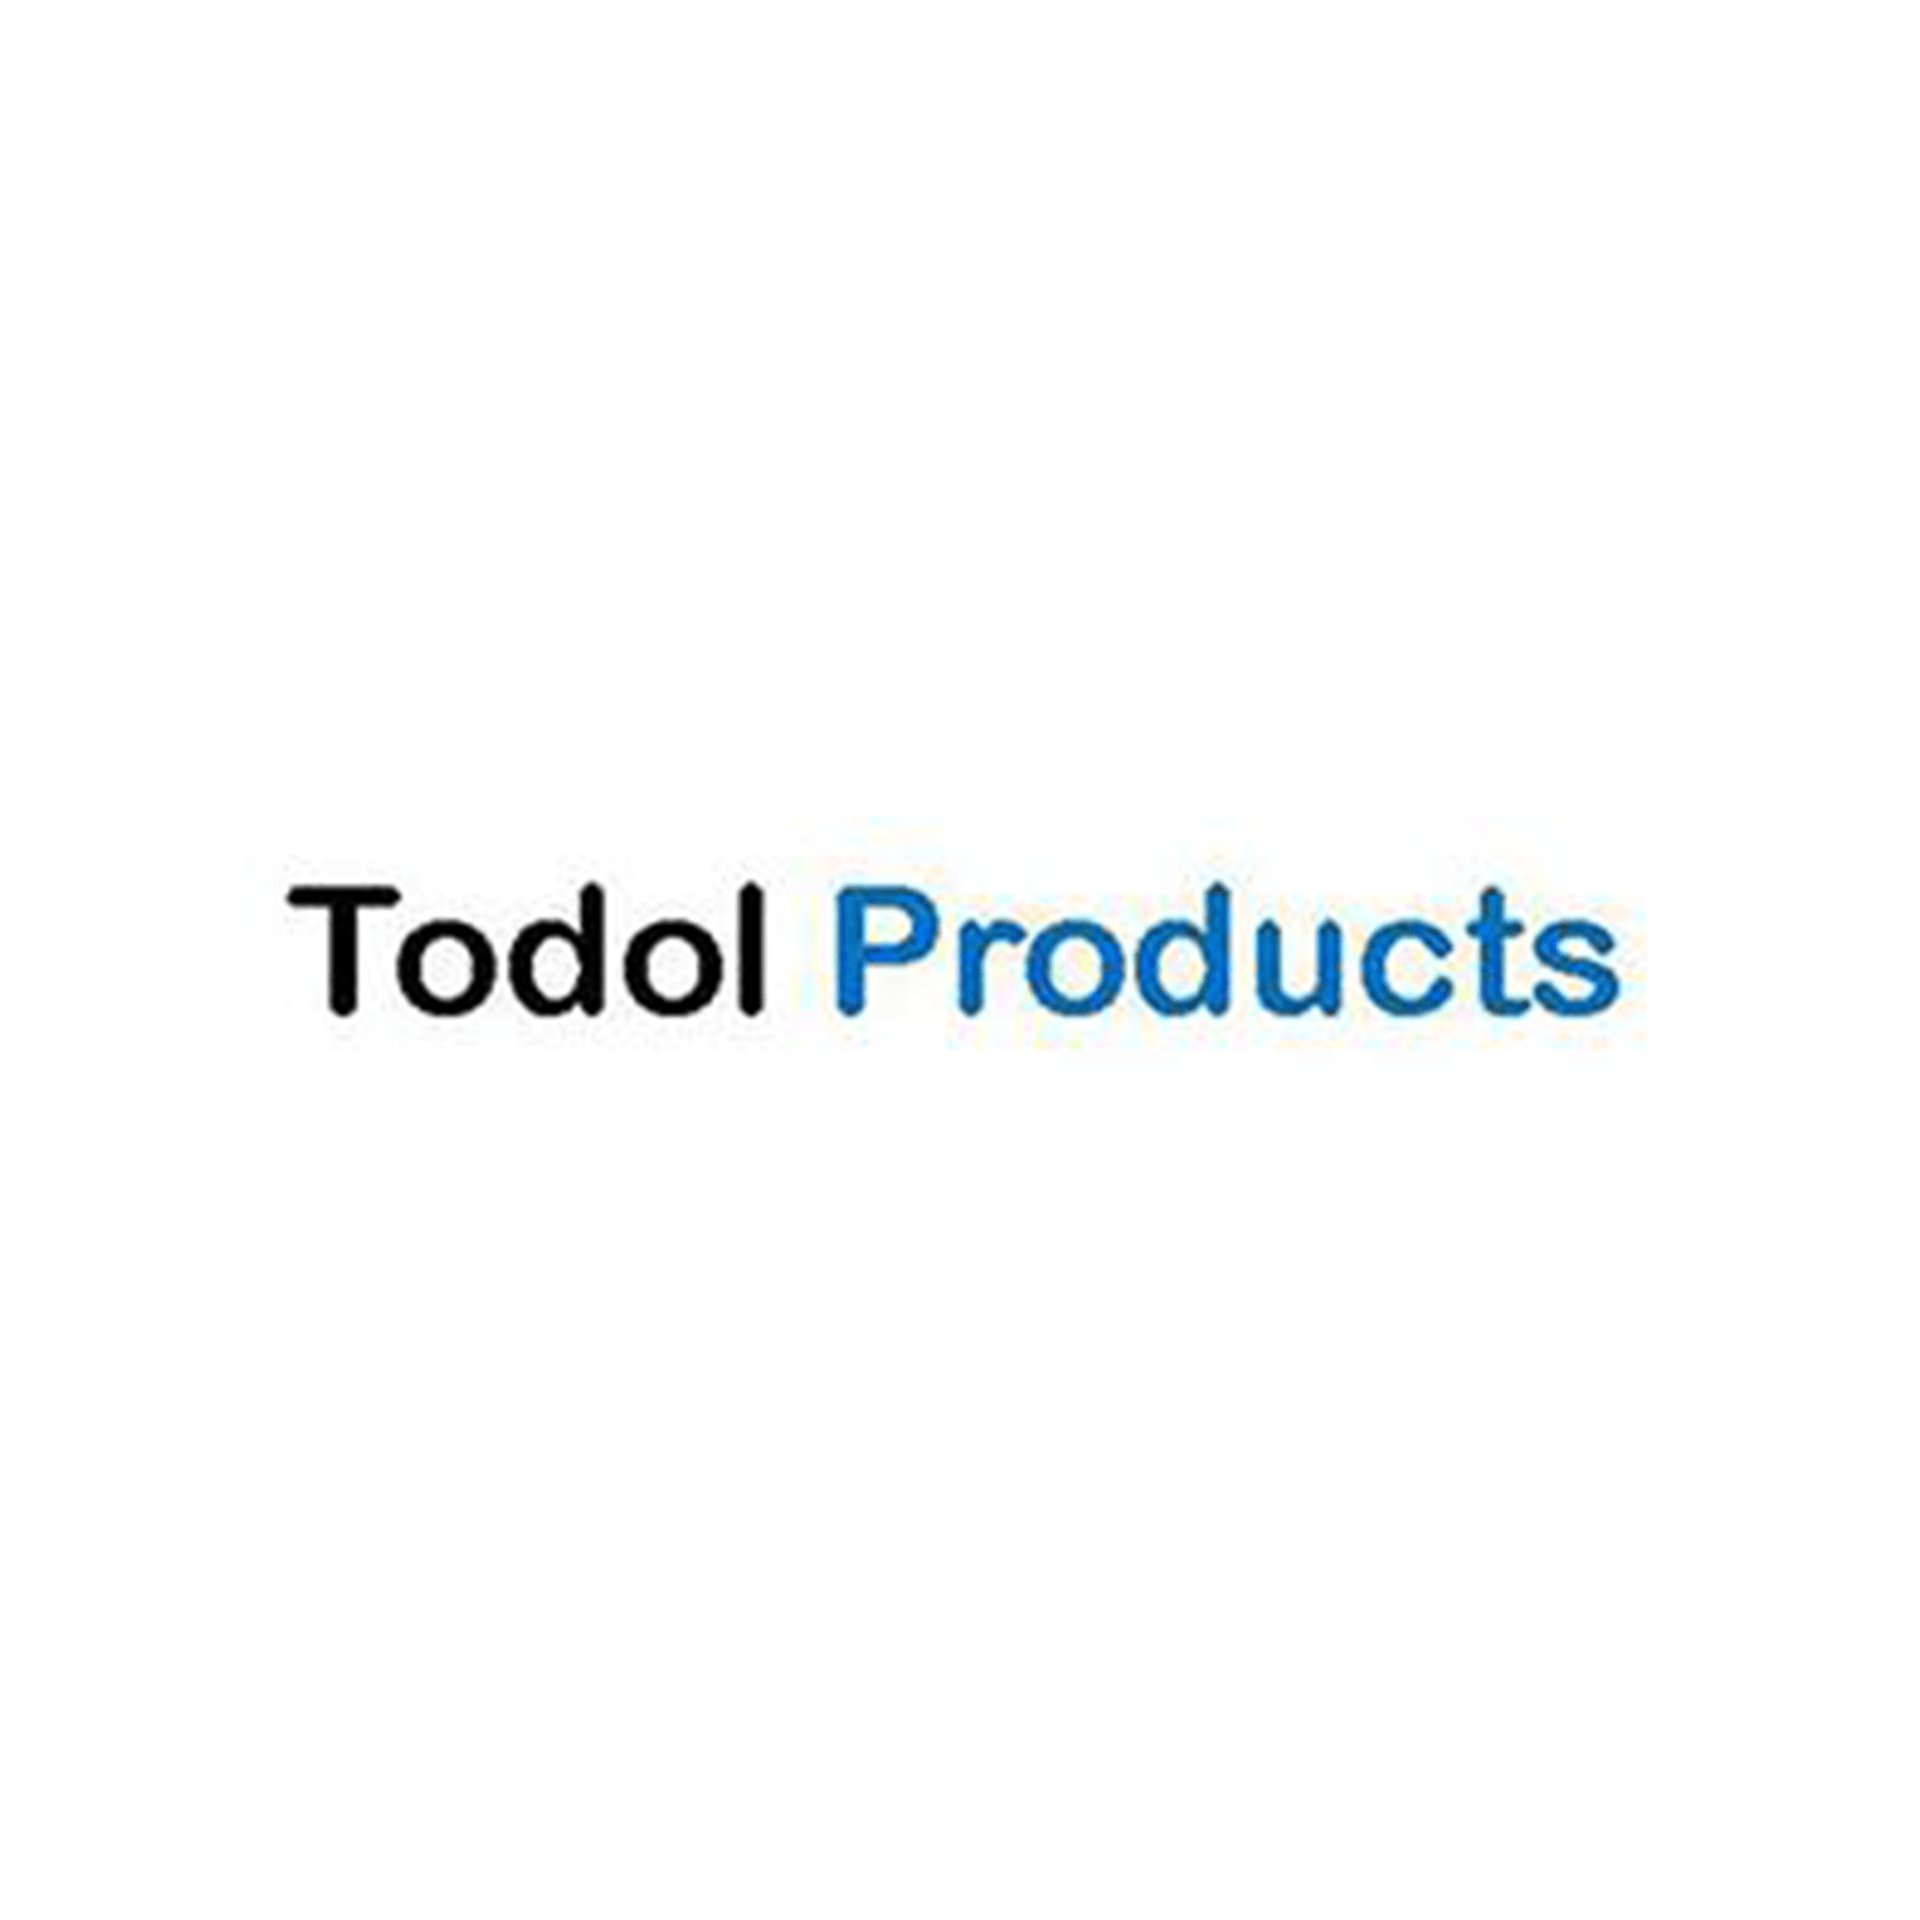 Todol Products